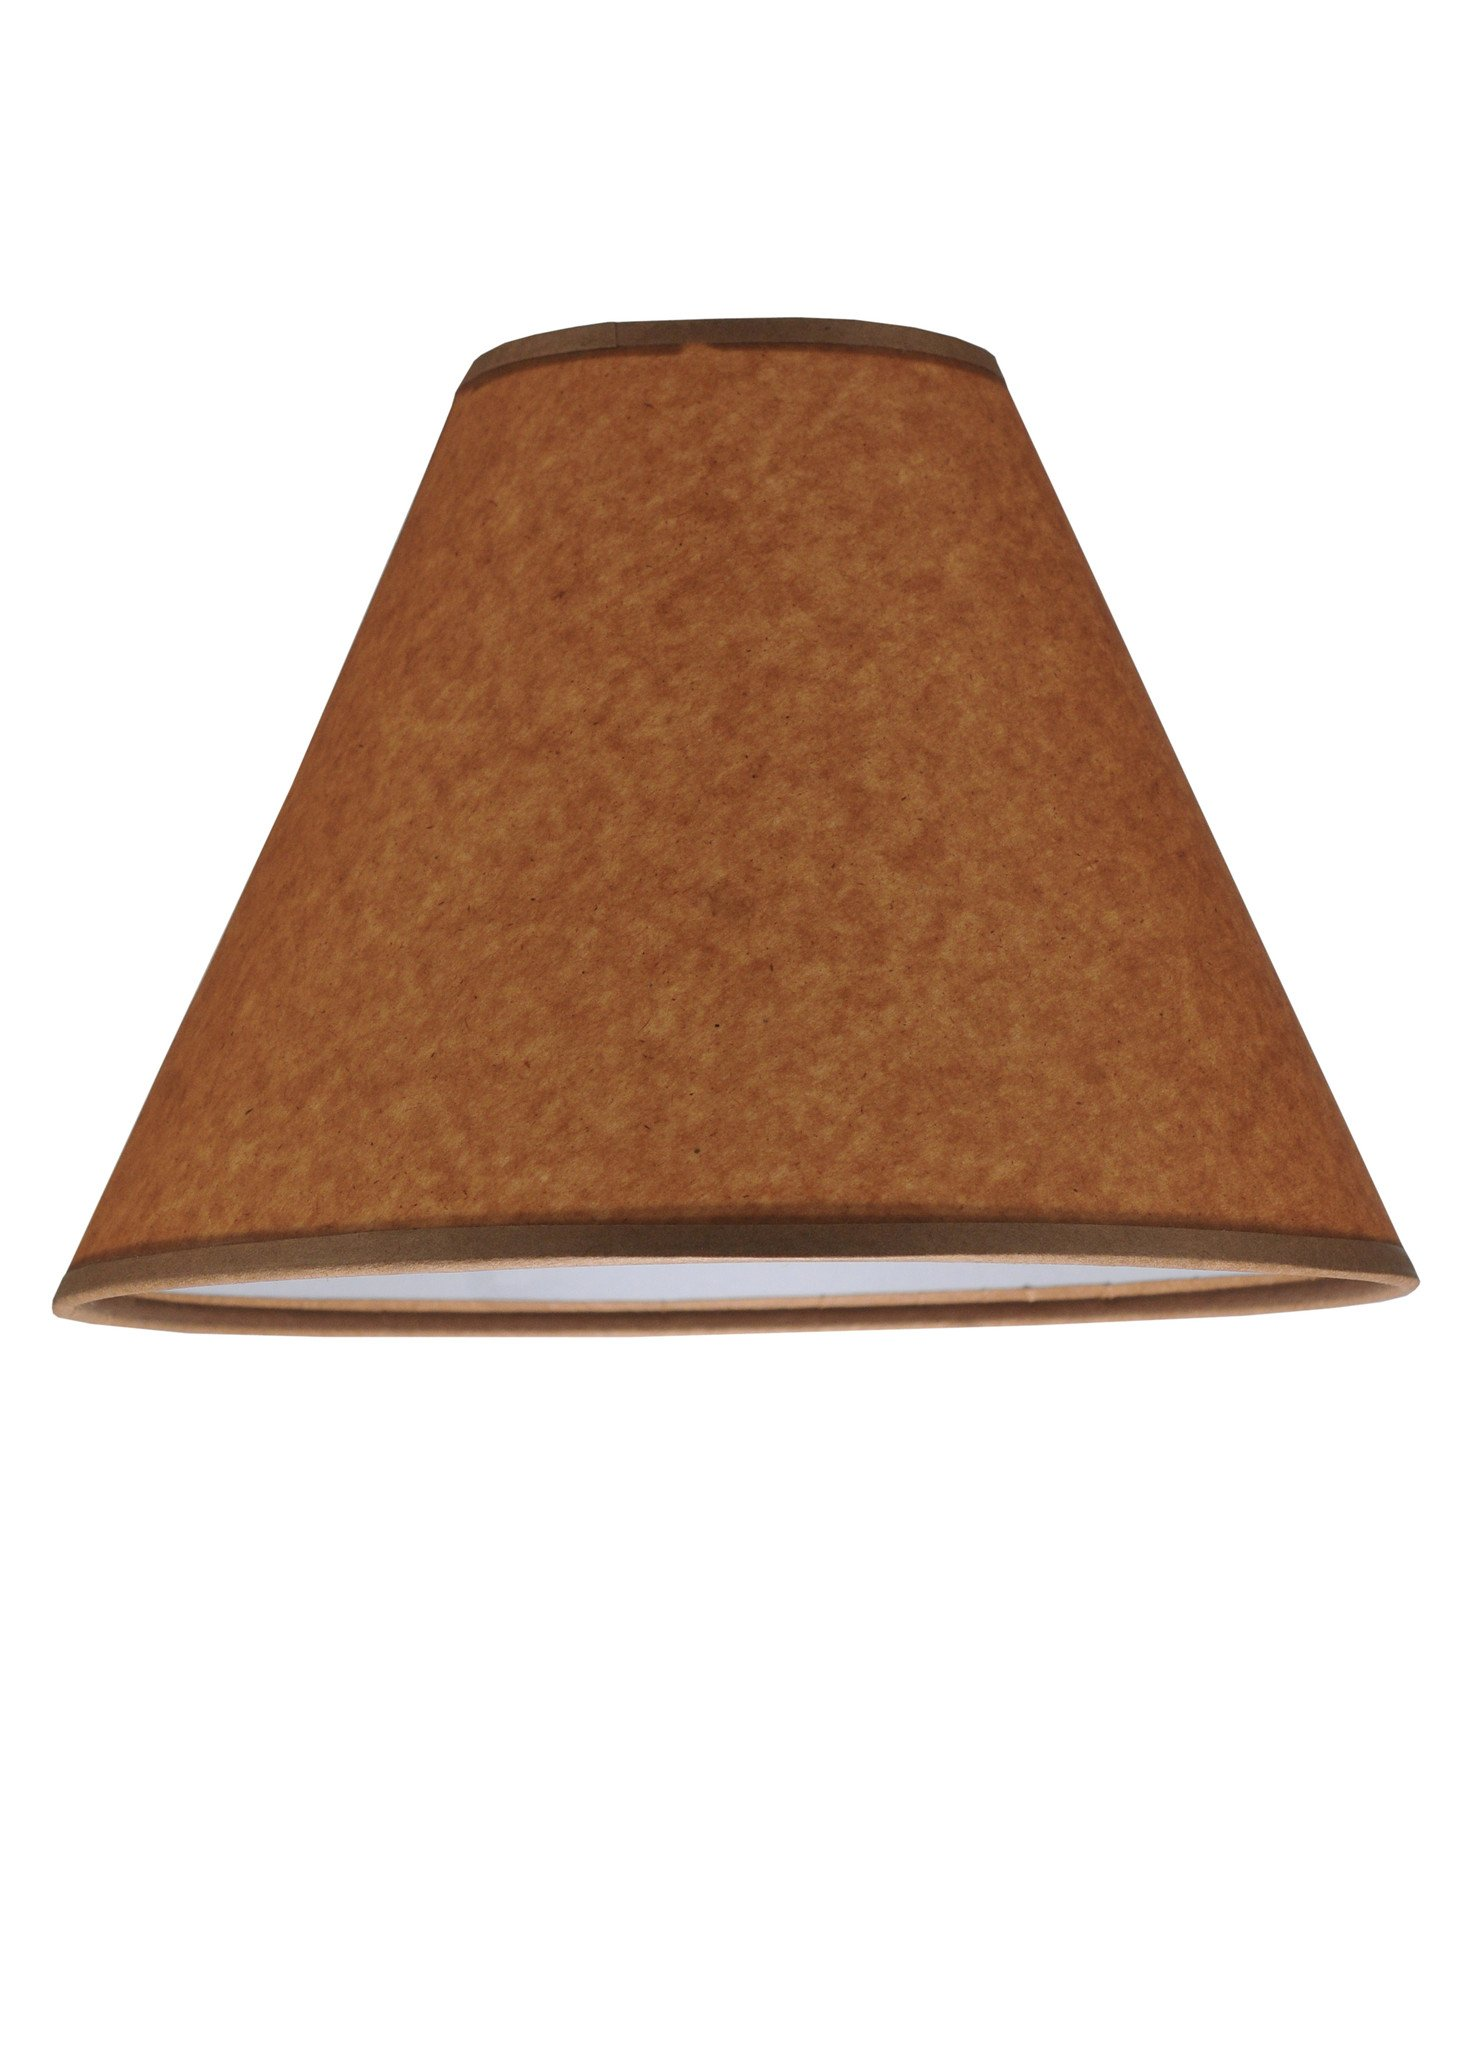 10 Inch W X 7 Inch H Parchment Oil Shade Product Application Fabric, Fringe and Parchment by Meyda